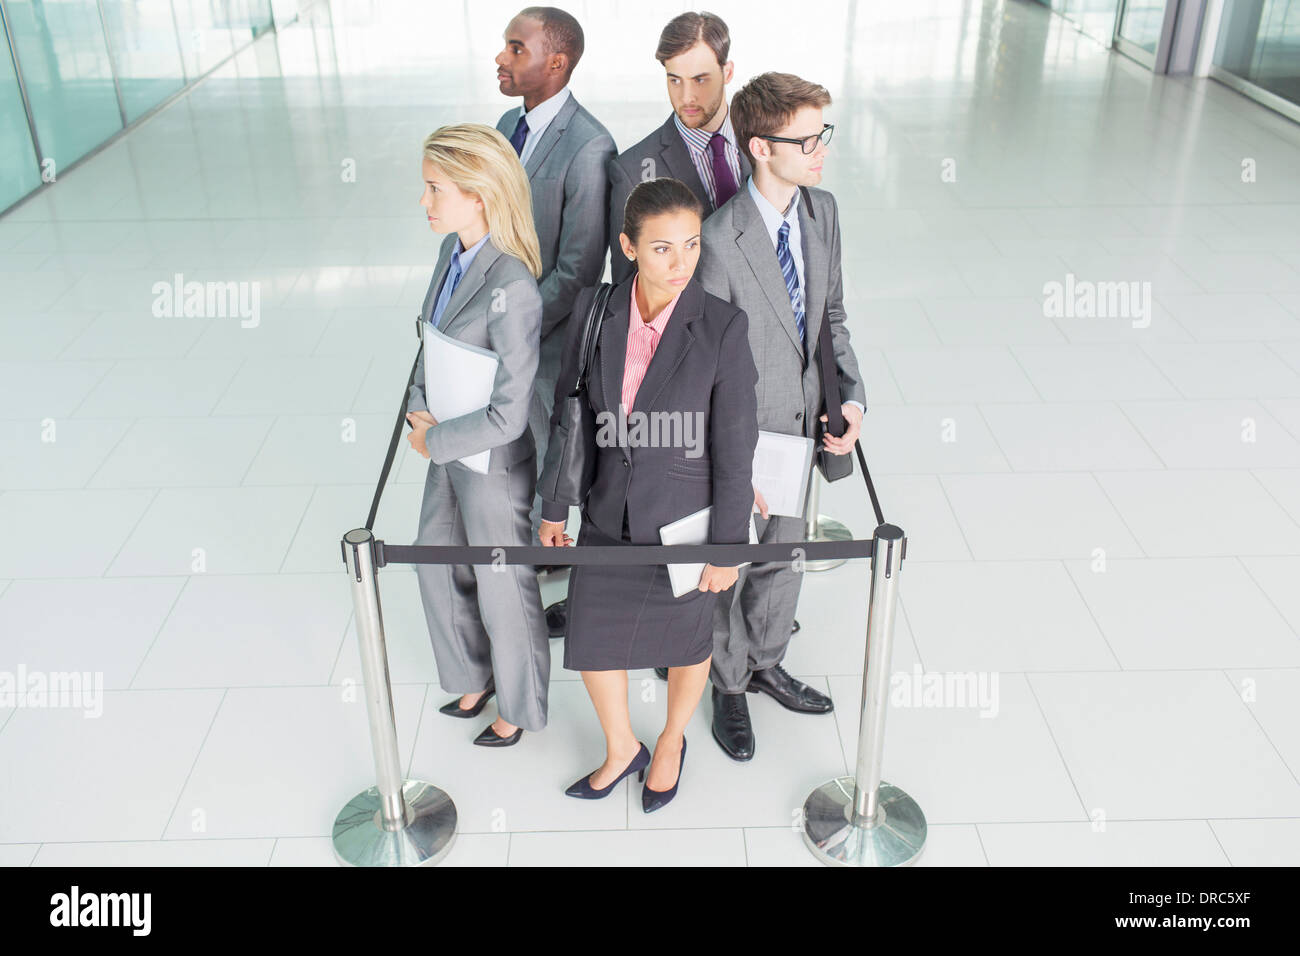 Business people standing in roped-off square Photo Stock